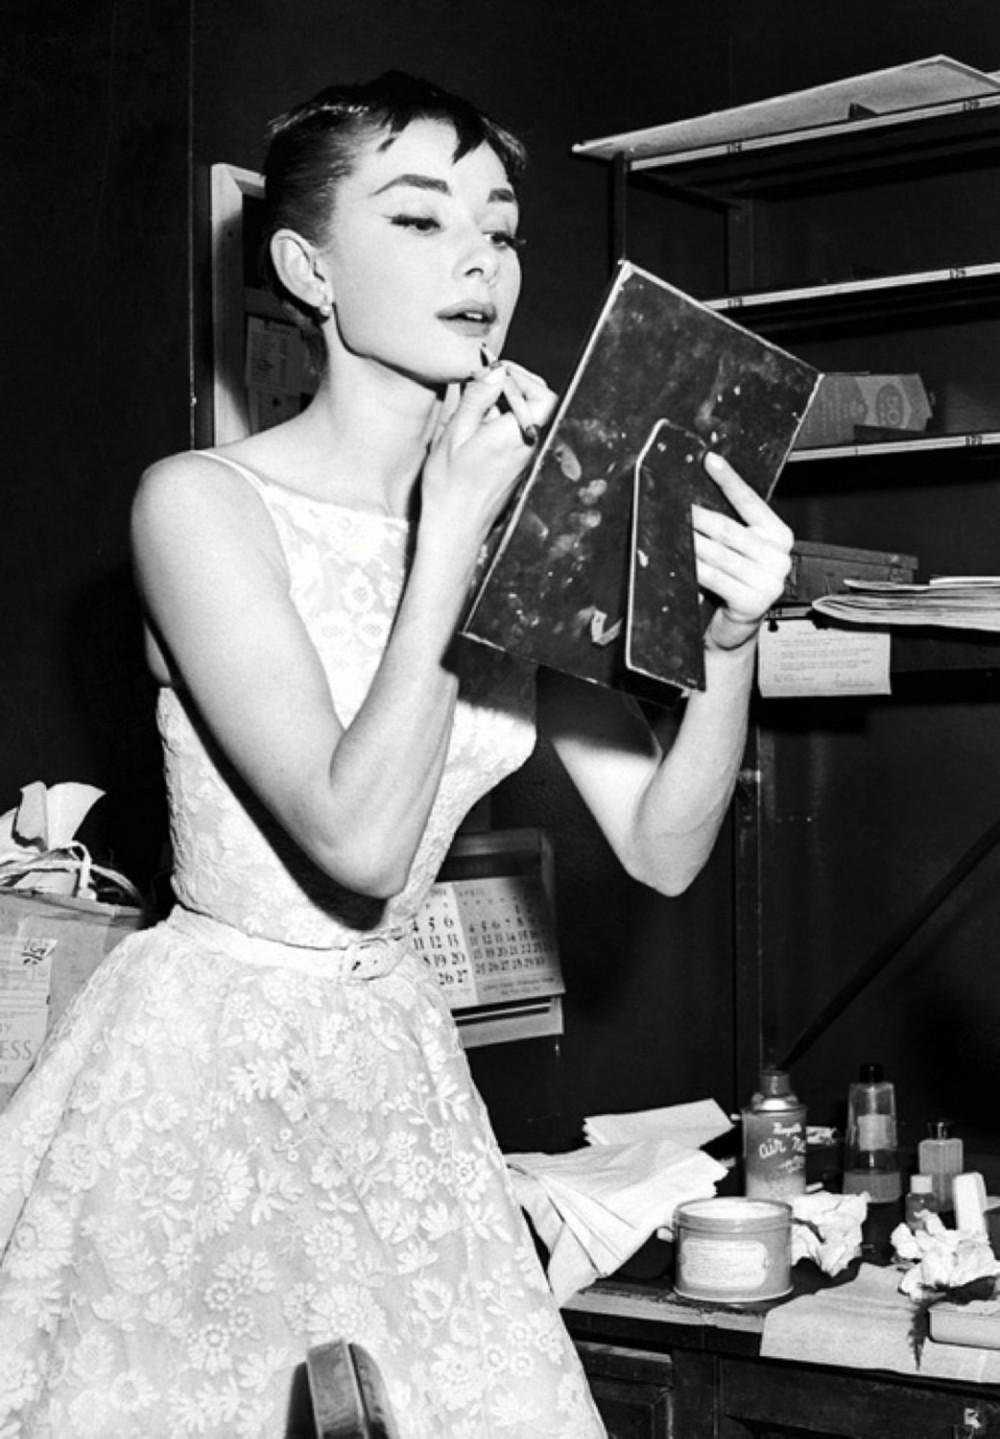 Audrey Hepburn Putting on Makeup